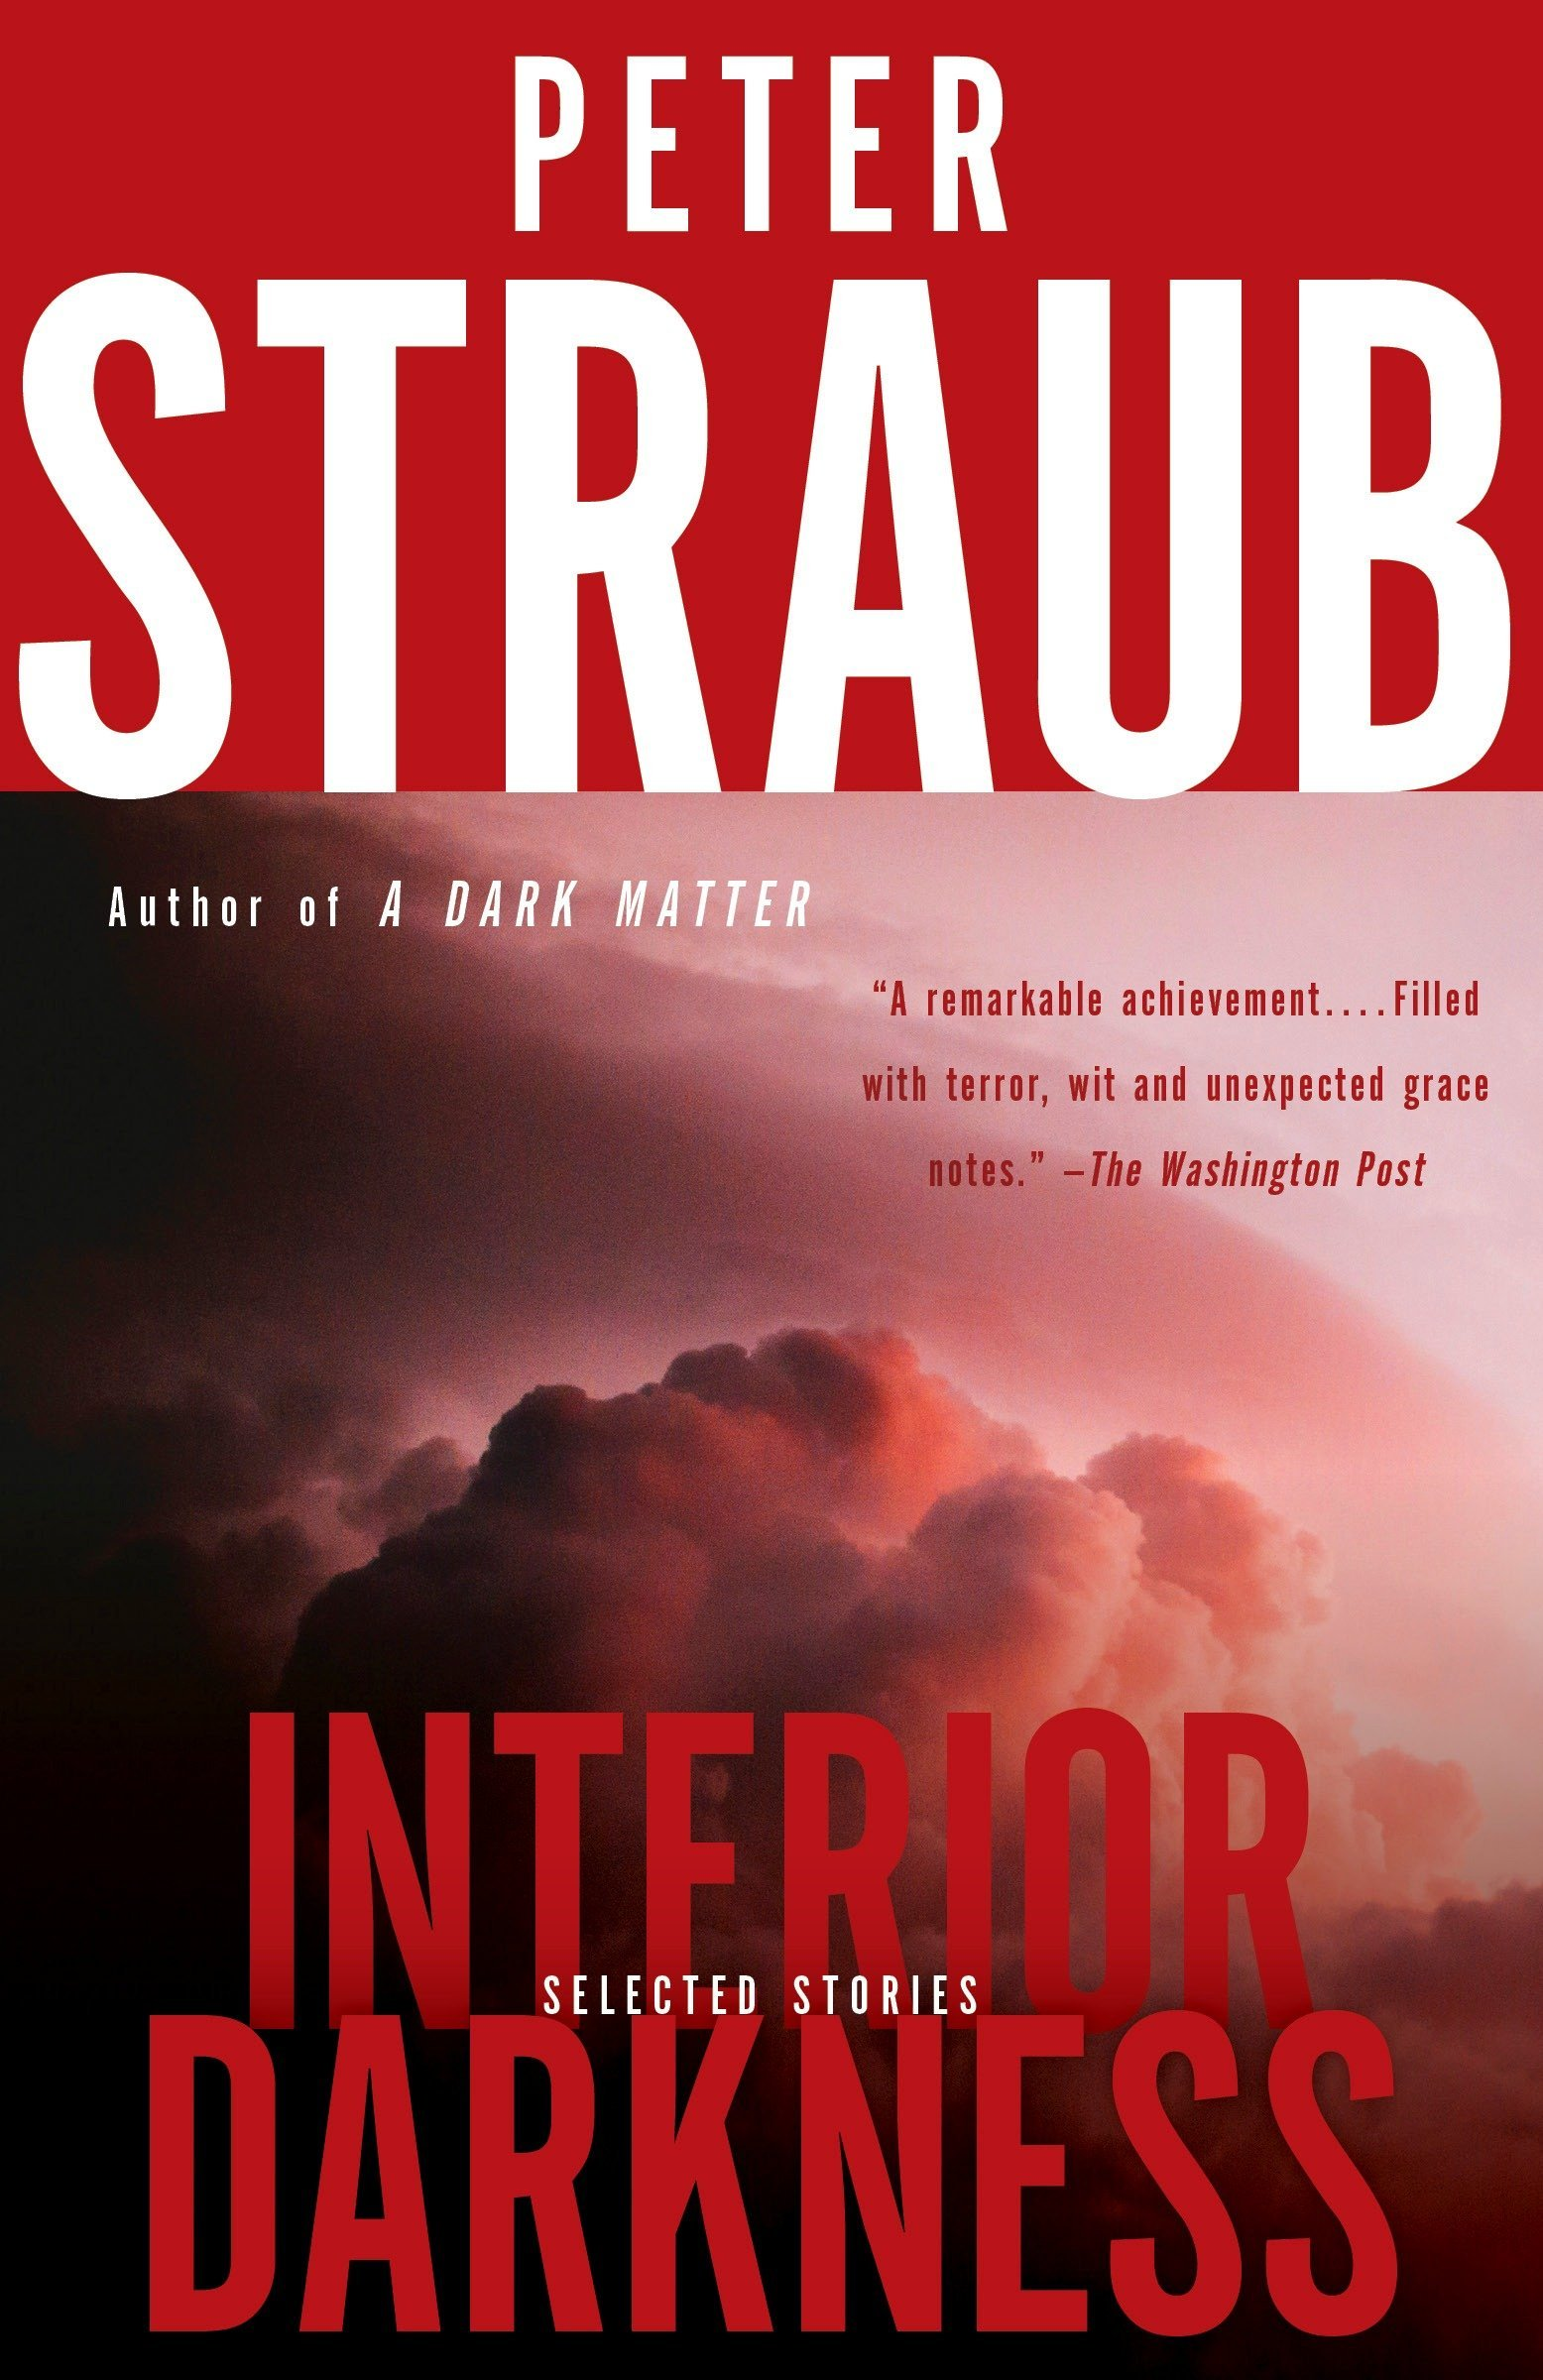 Interior Darkness: Selected Stories: Peter Straub: 9781101971222 ...